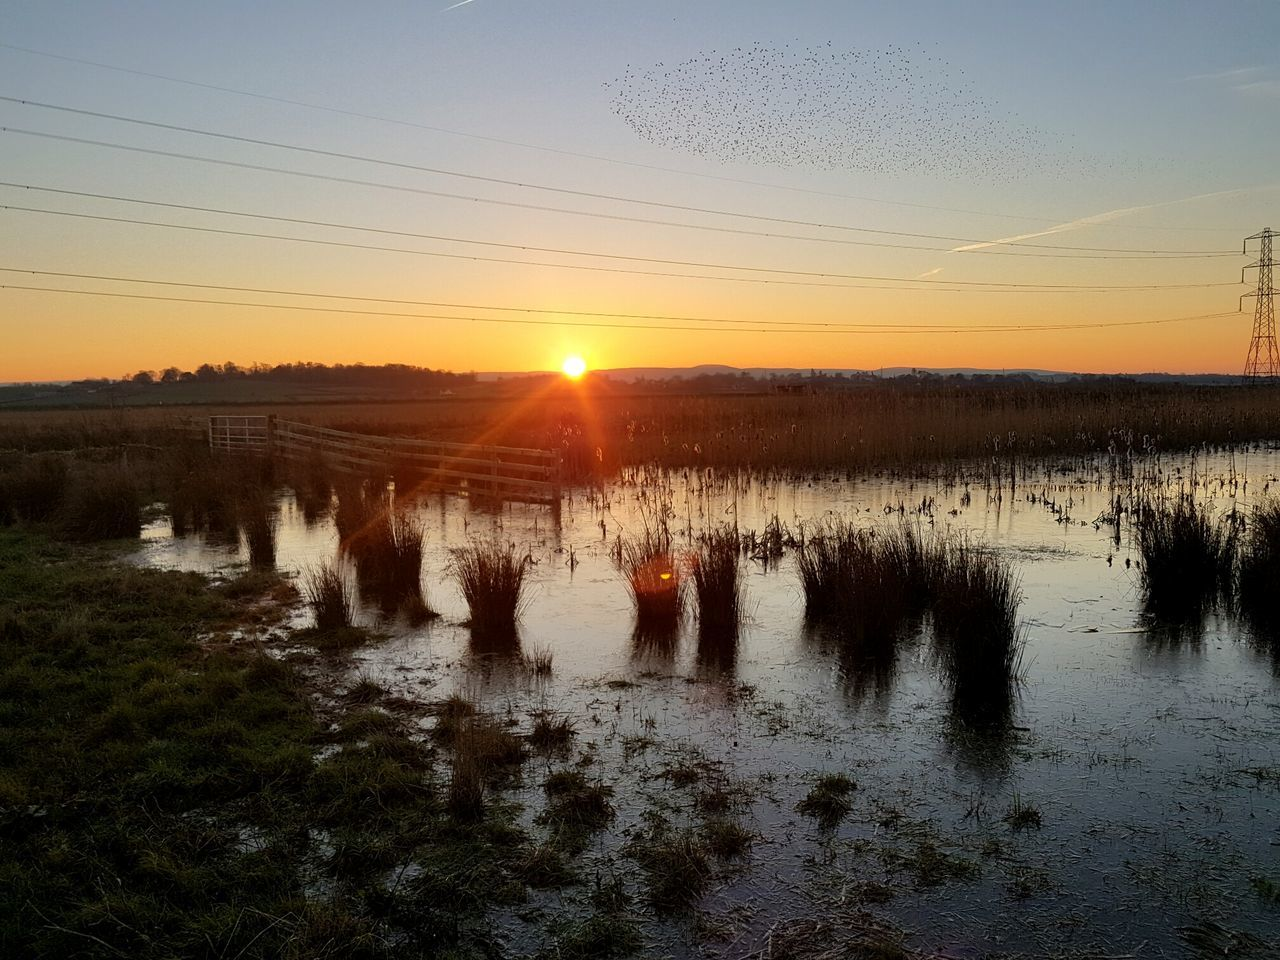 Sunset Large Group Of Animals Reflection Sky Sun Nature Large Group Of People Water Outdoors Landscape Bird Beauty In Nature Agriculture Flock Of Birds Togetherness Animal Themes Day People Running Late Marshland  Tire Track Beauty In Nature No People Agriculture EyeEmNewHere